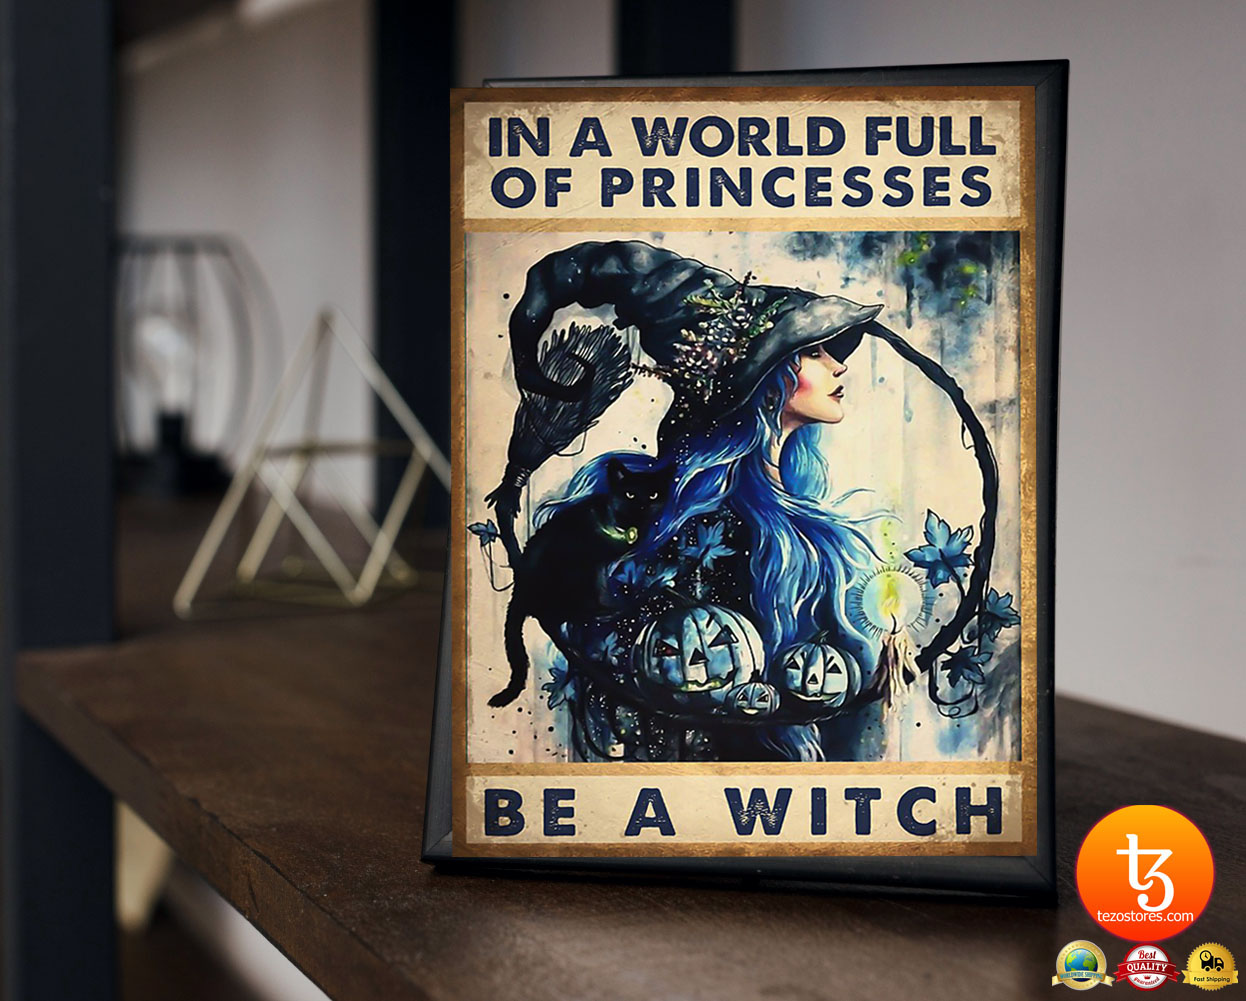 In a world full of princesses be a witch poster 19